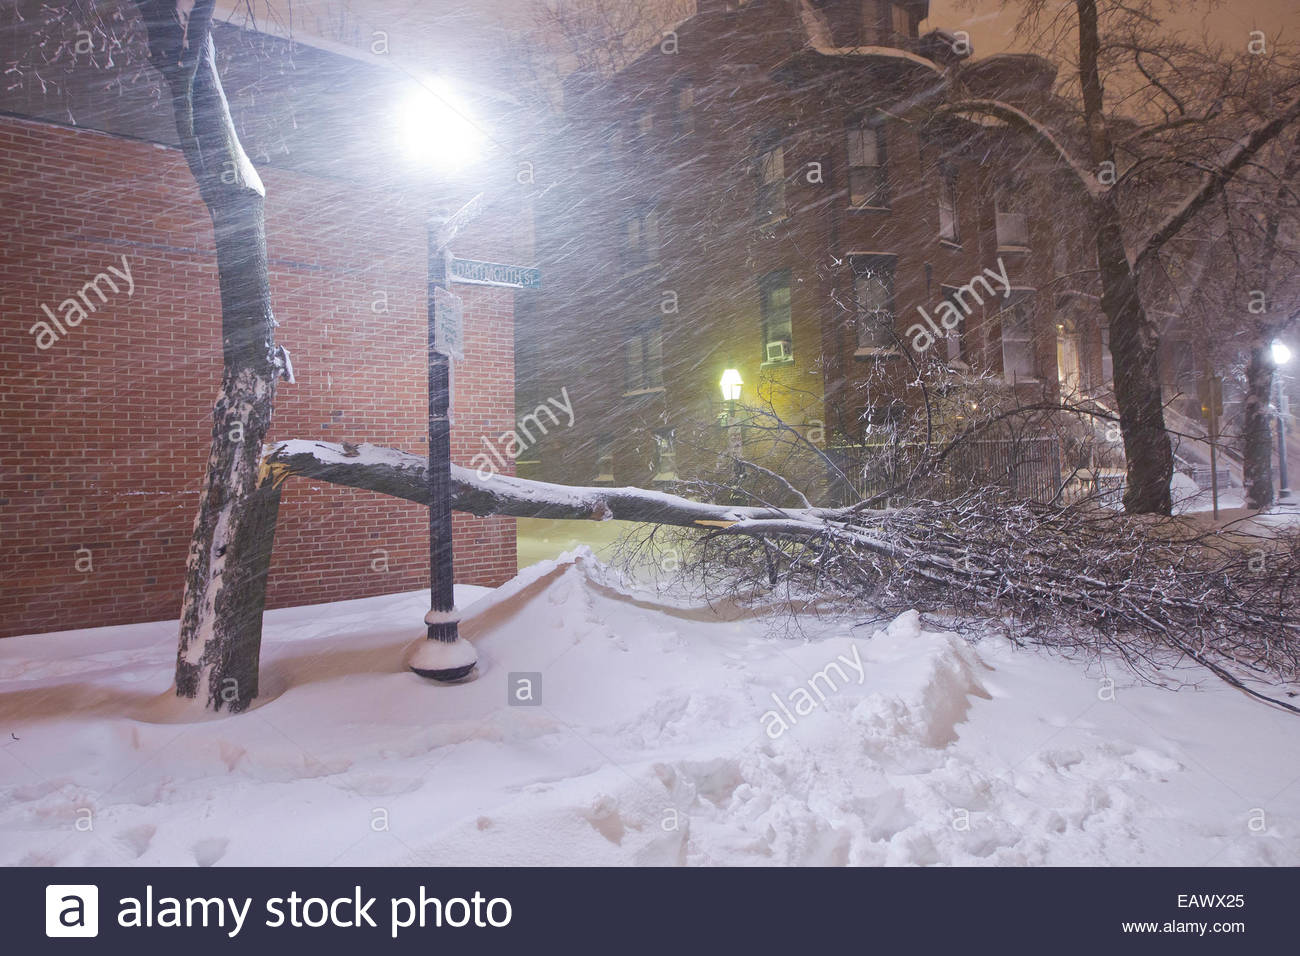 Heavy winds cause tree branches to break during the historic blizzard that hit Boston in 2013. - Stock Image